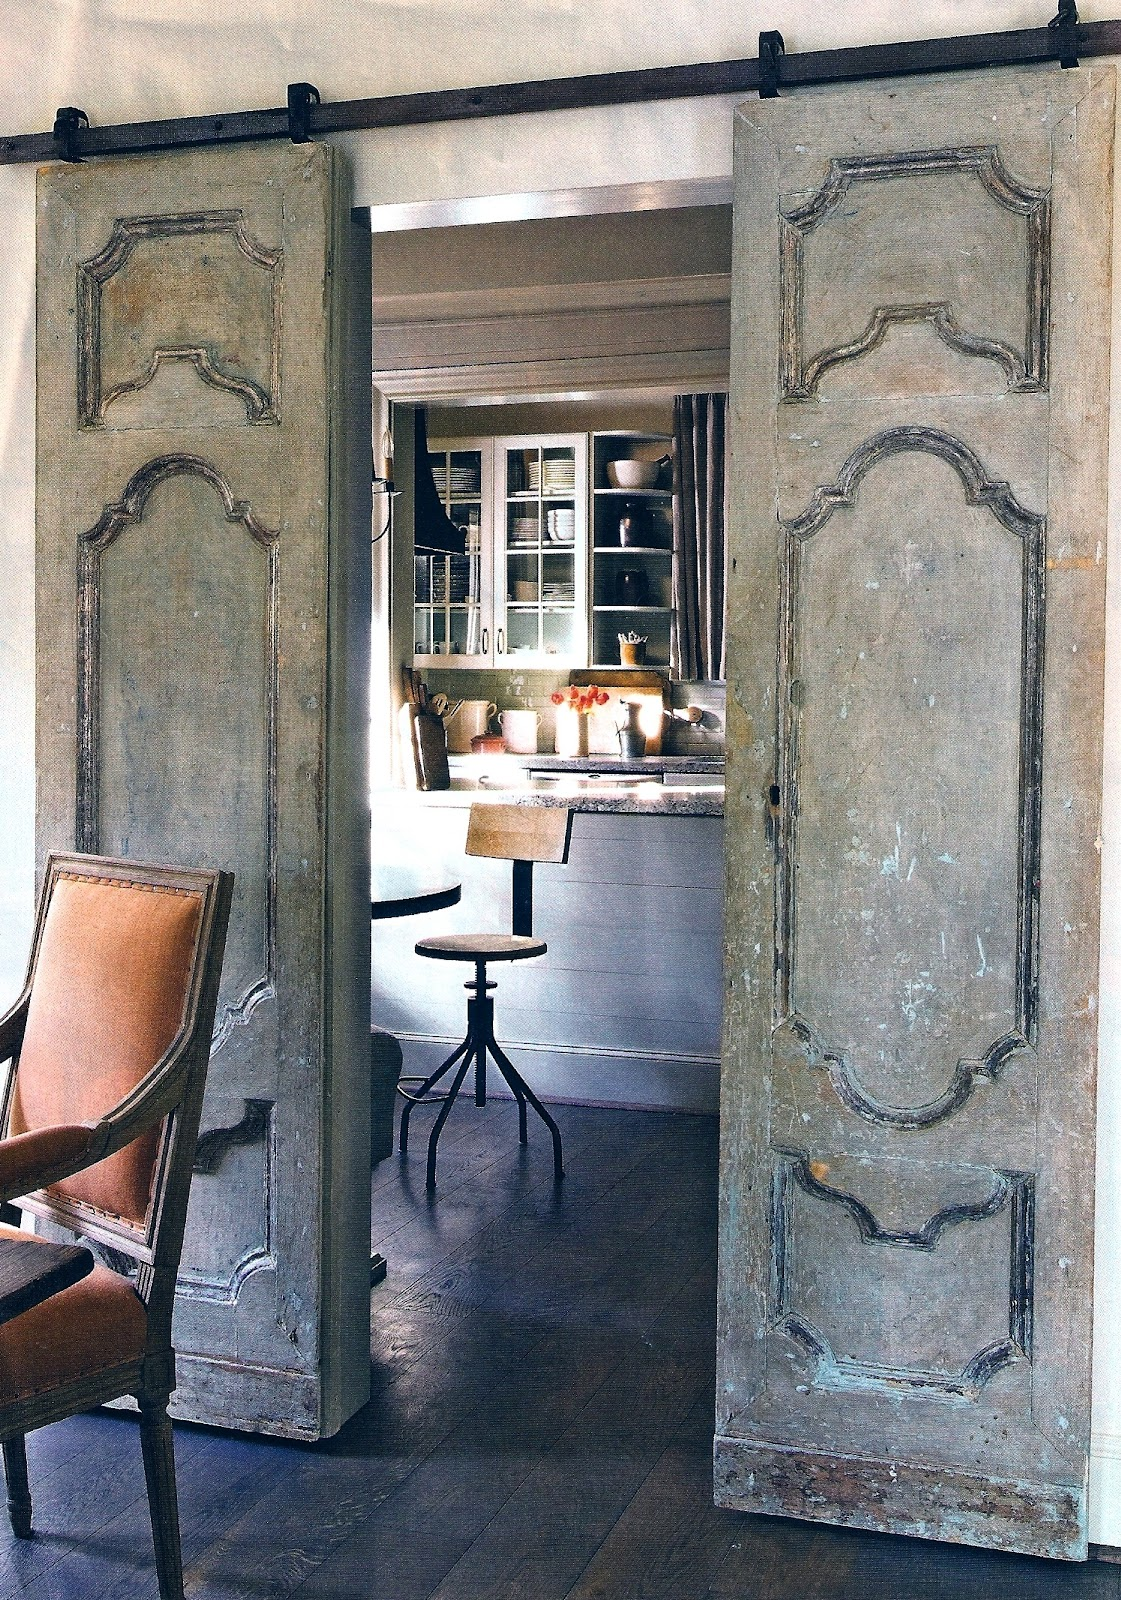 T H E V I S U A L V A M P French Doors With A Twist